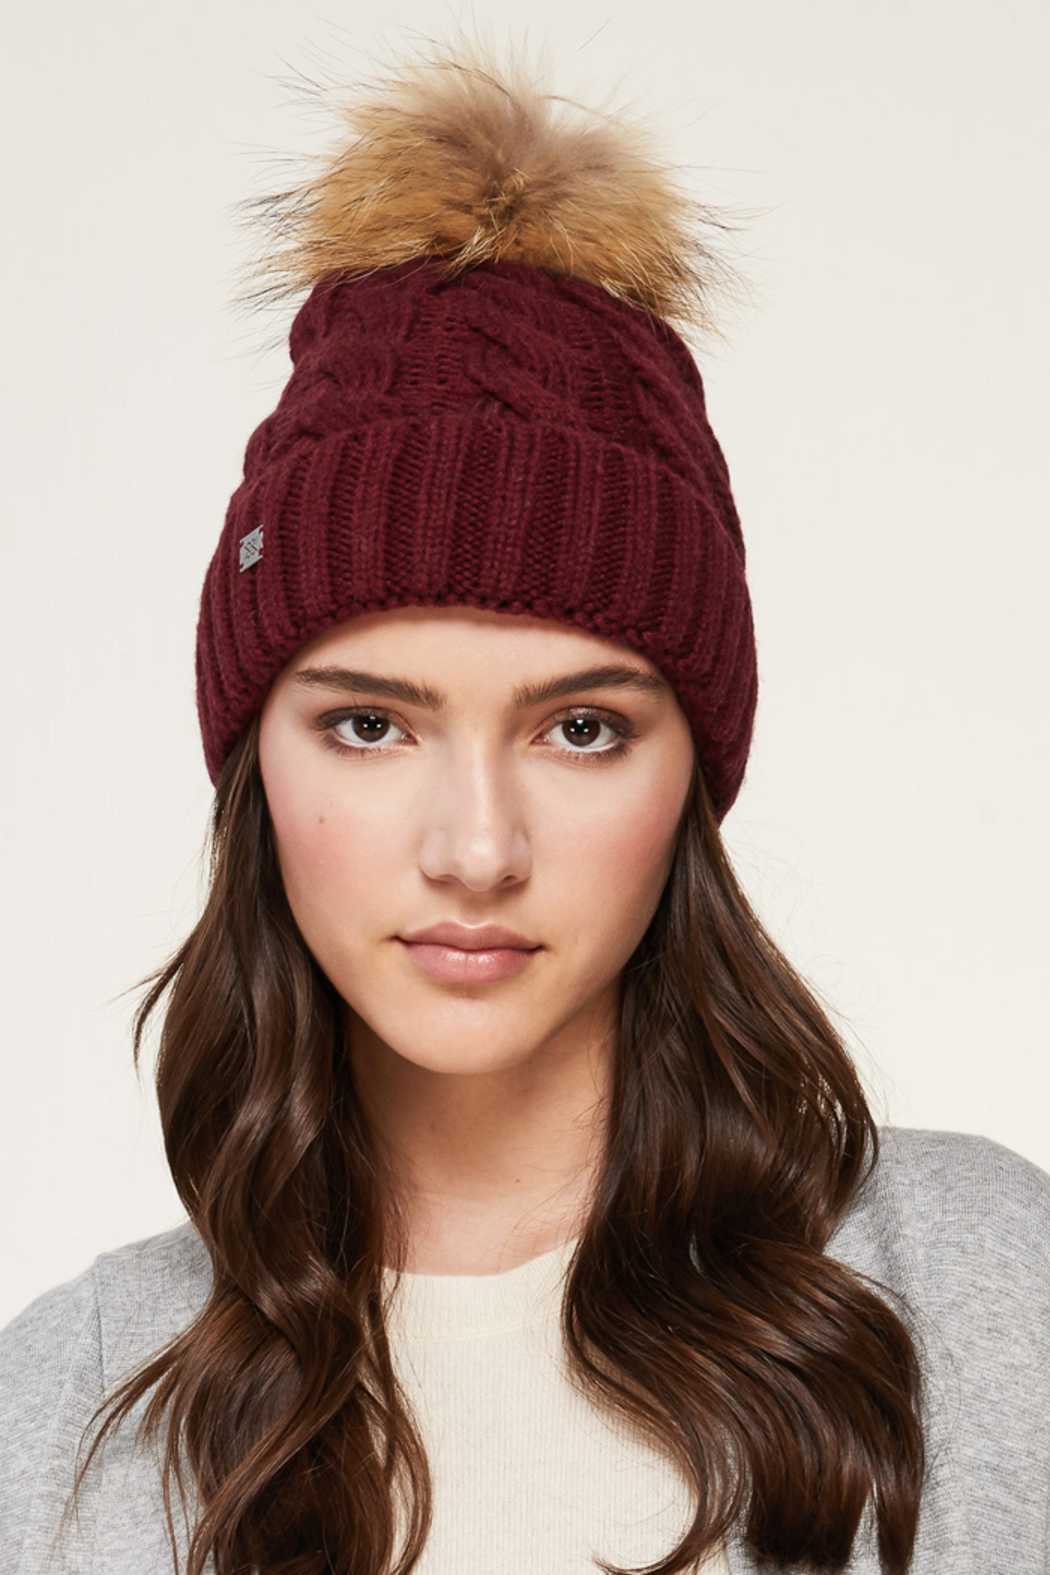 Soia & Kyo SOIA & KYO CABLE KNIT FUR POM POM HAT - Main Image